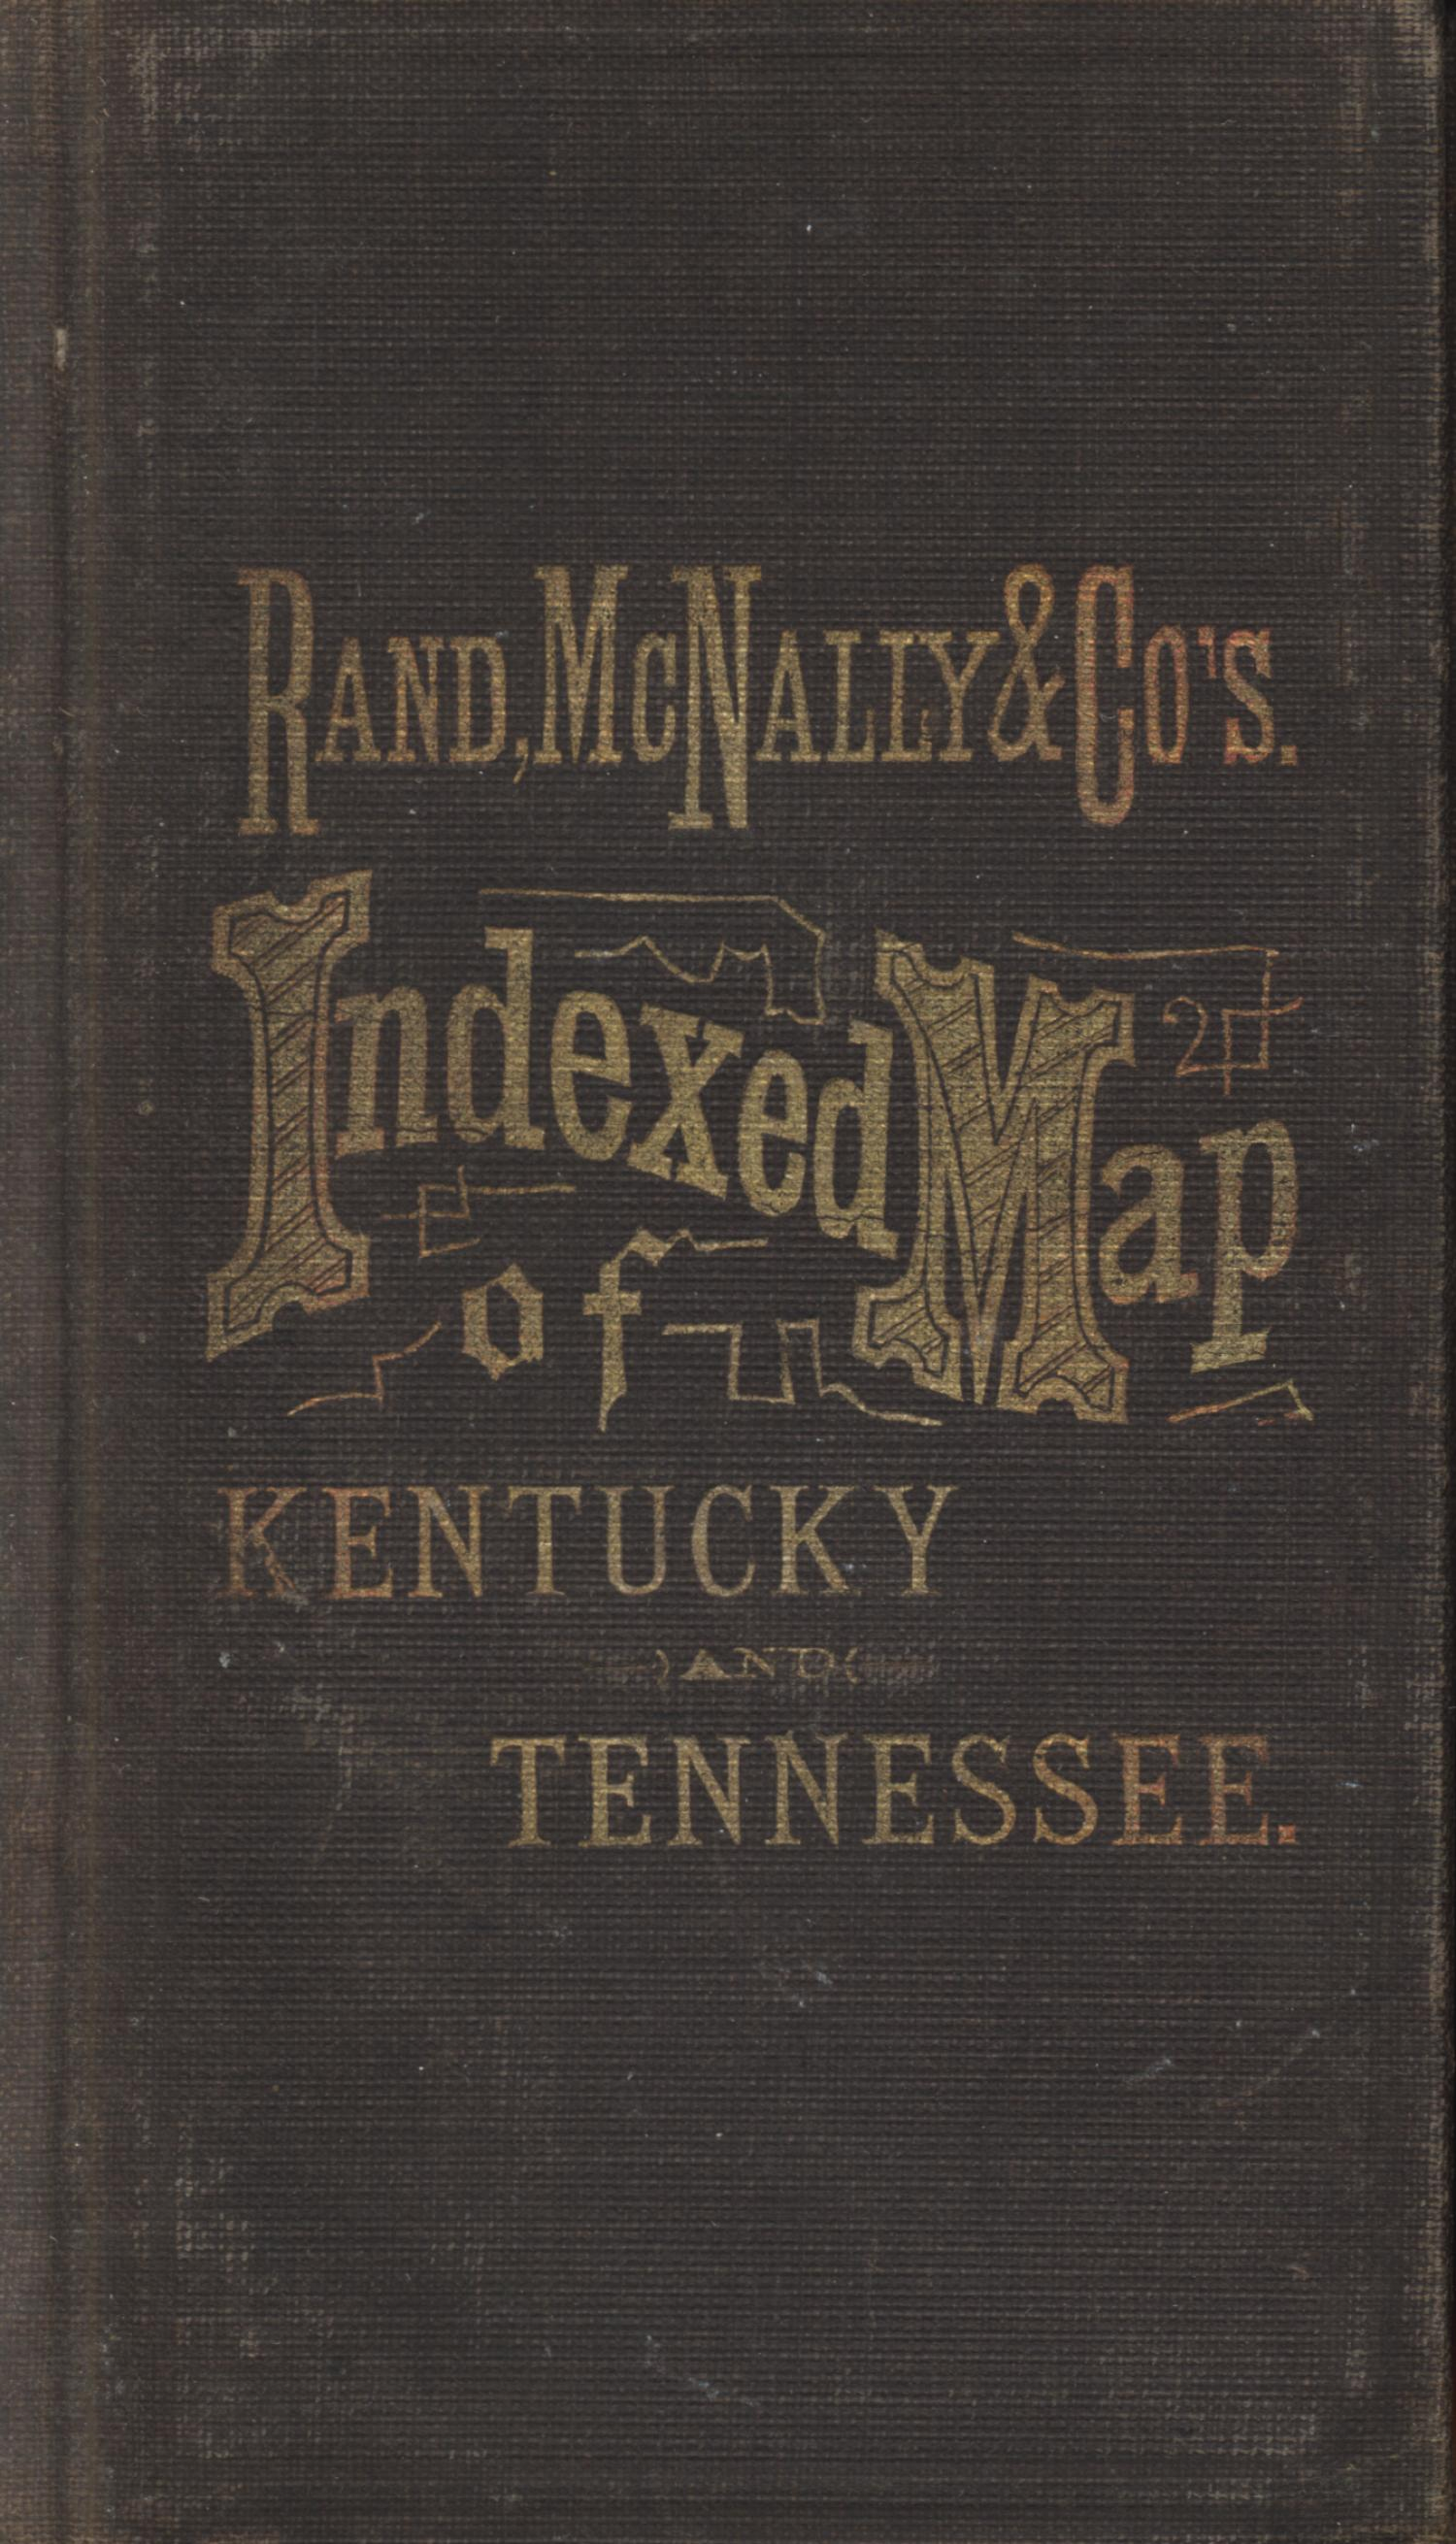 Rand, McNally & Co.s Kentucky and Tennessee [Accompanying Text]., Explanation and supporting information related to map that shows late nineteenth century Kentucky and Tennessee counties, railroads, watershed, cities, and towns.,